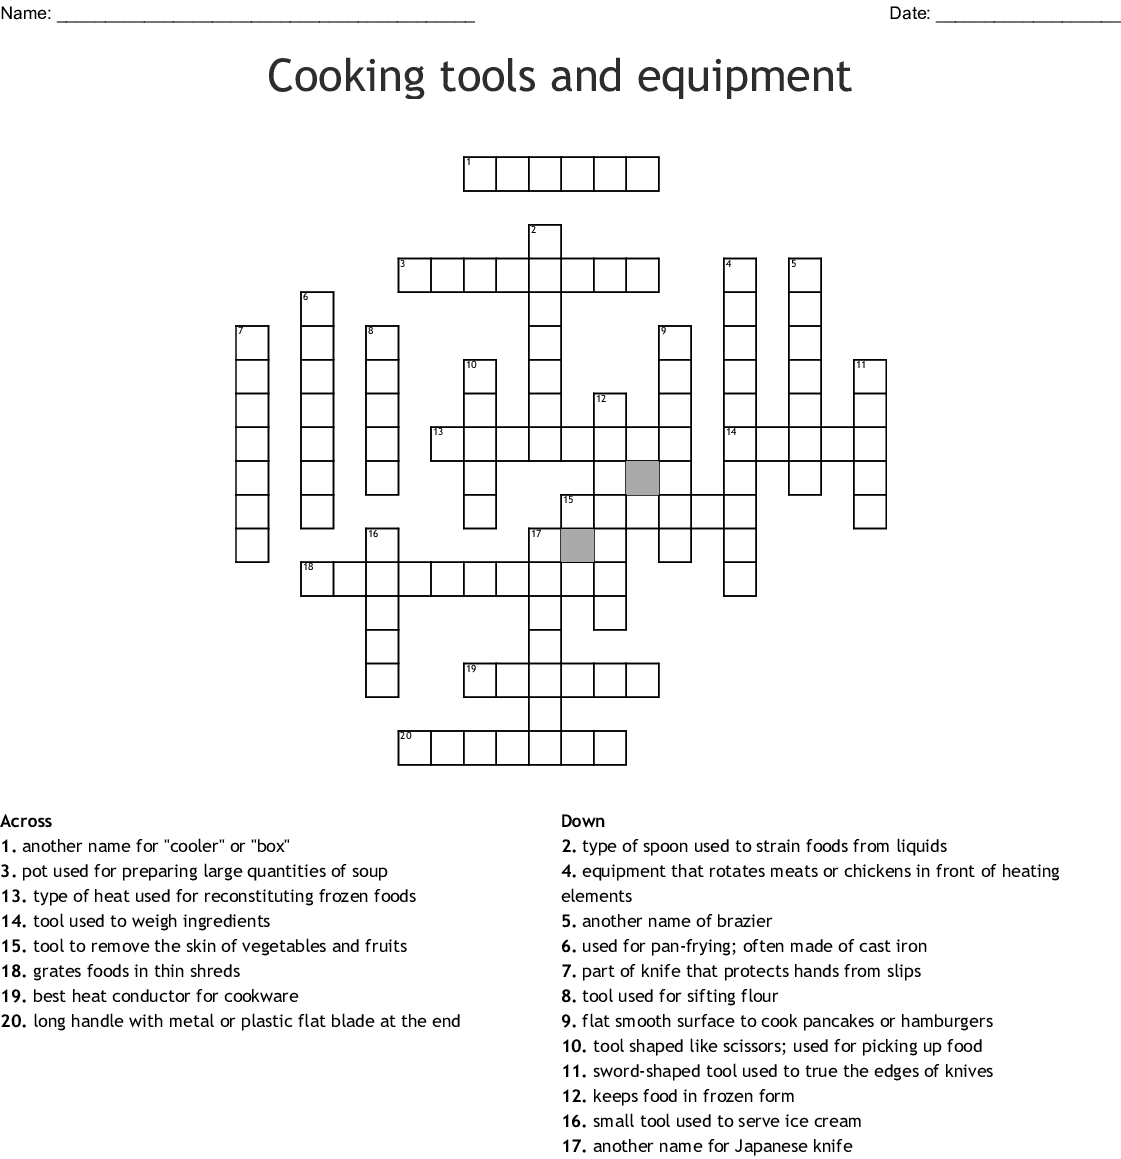 Kitchen Utensils Crossword Activity 1 Answers